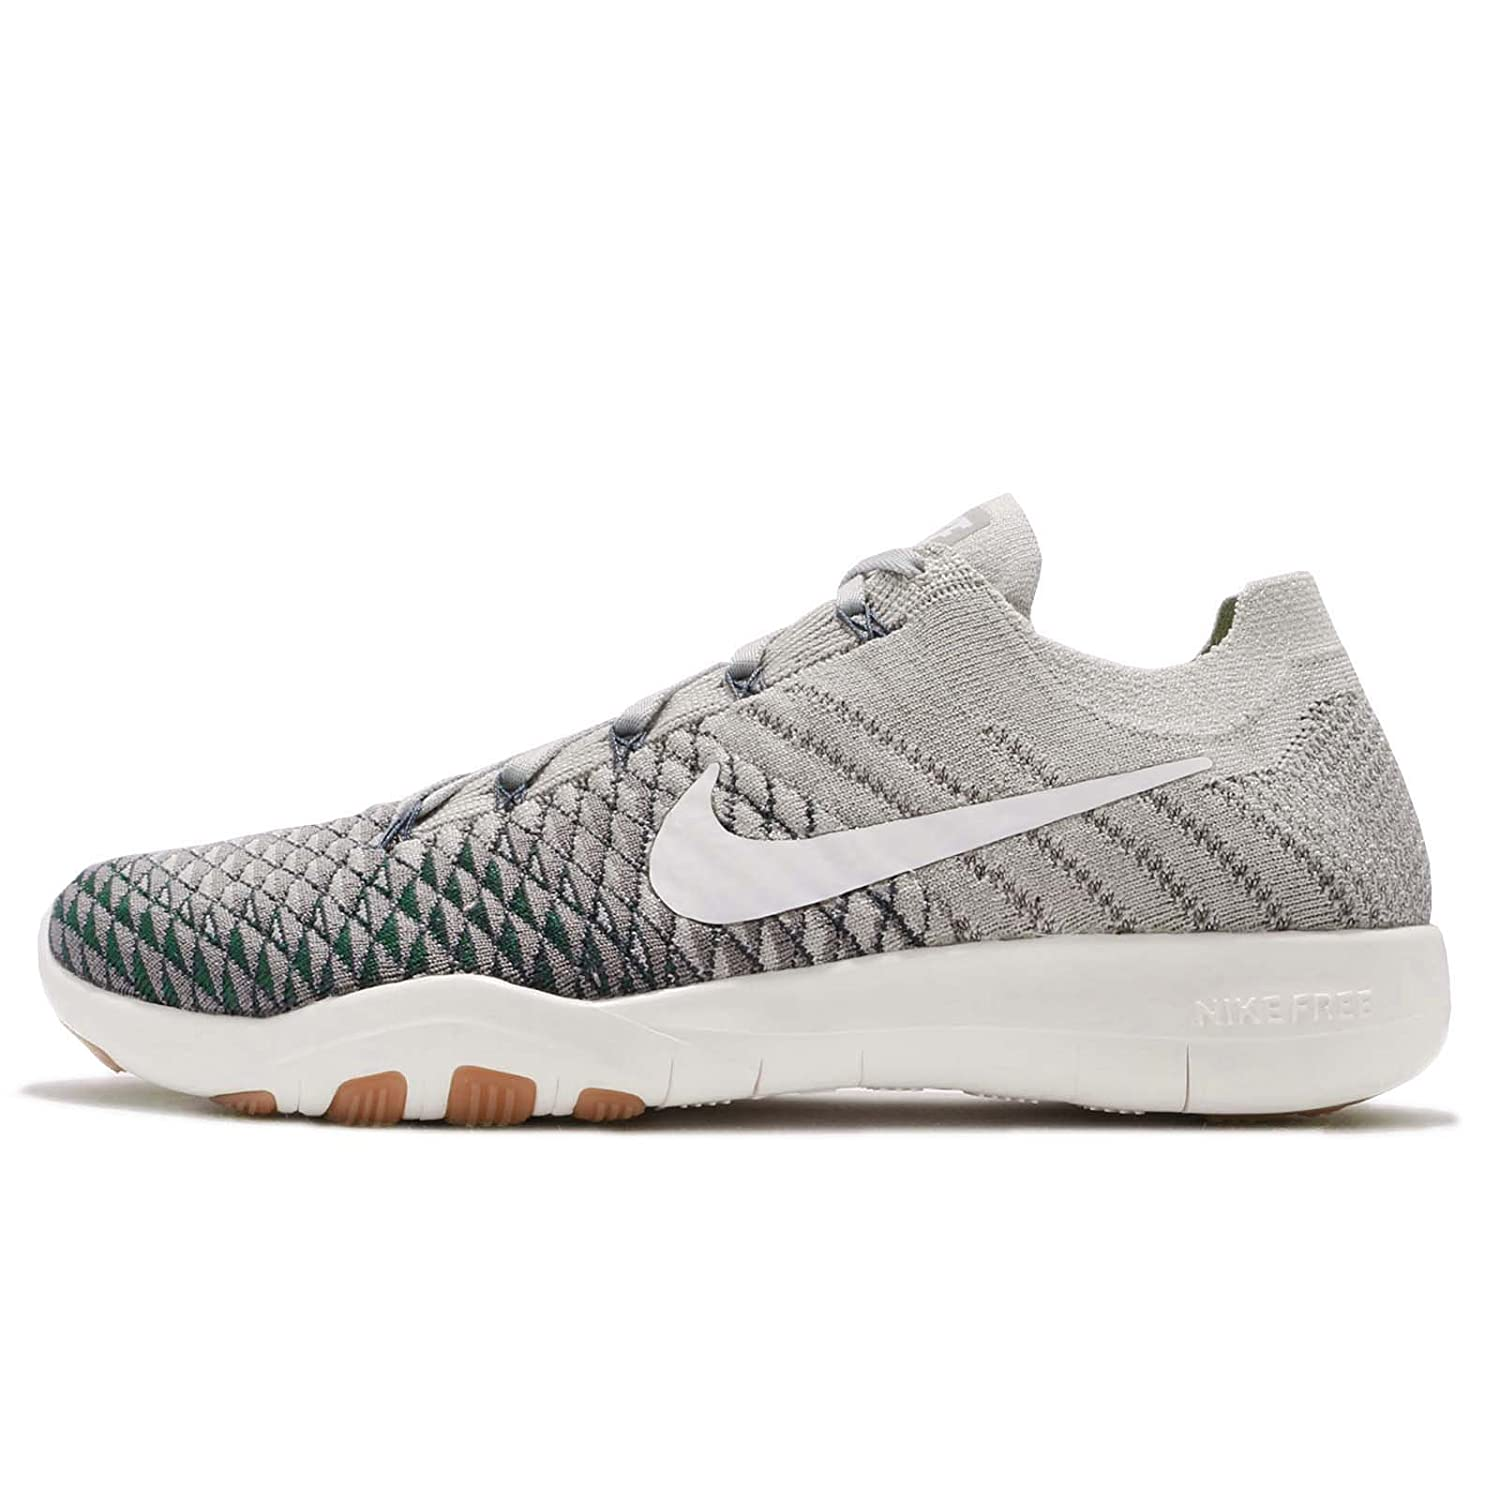 NIKE Free TR Flyknit 2 Womens Running Shoes B076PW53QC 8 B(M) US|Pale Grey/Sail-light Charcoal